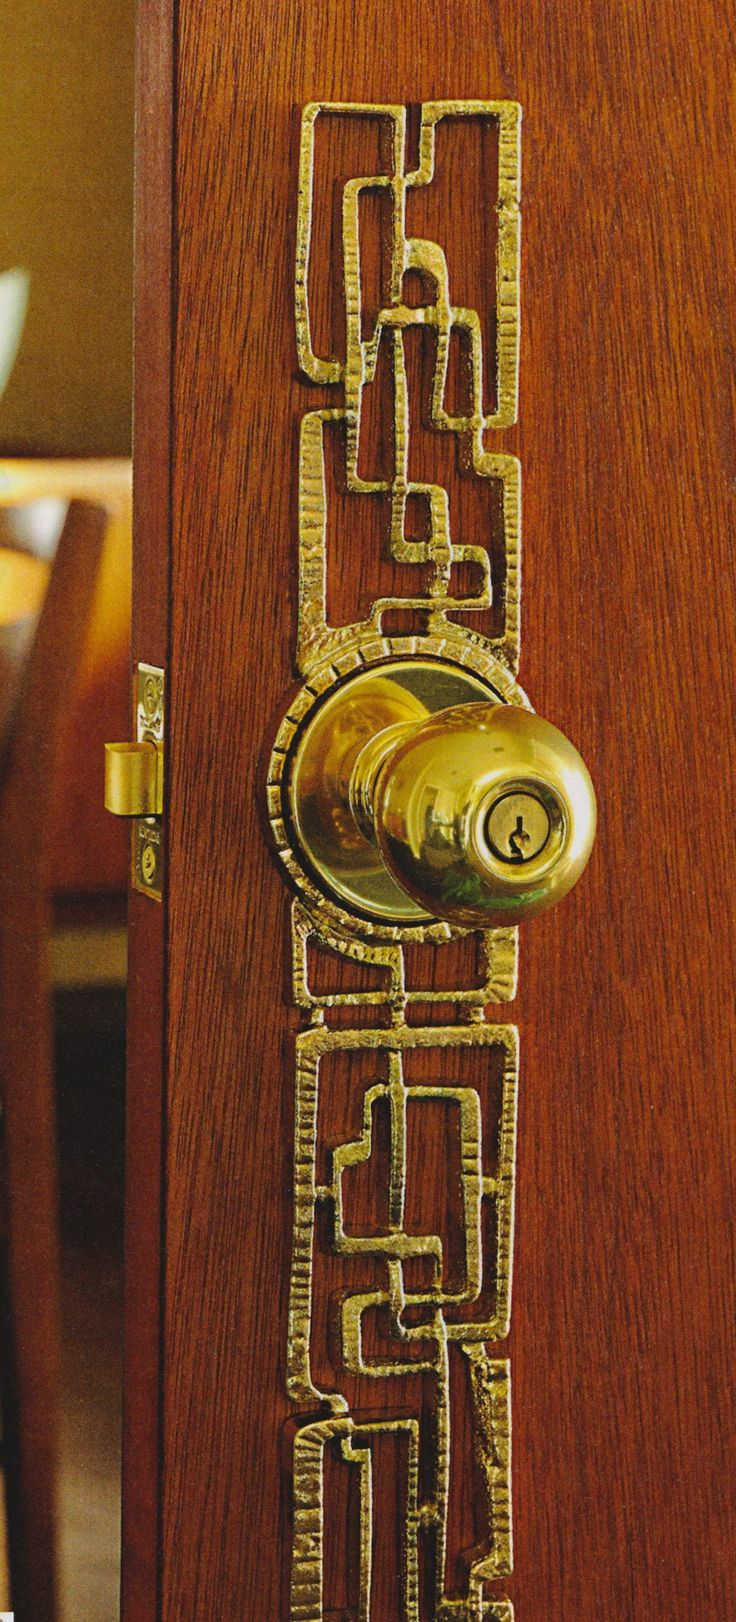 mid century door hardware - Google Search Who knew this kind of thing was even out there? I MUSTTT have...!